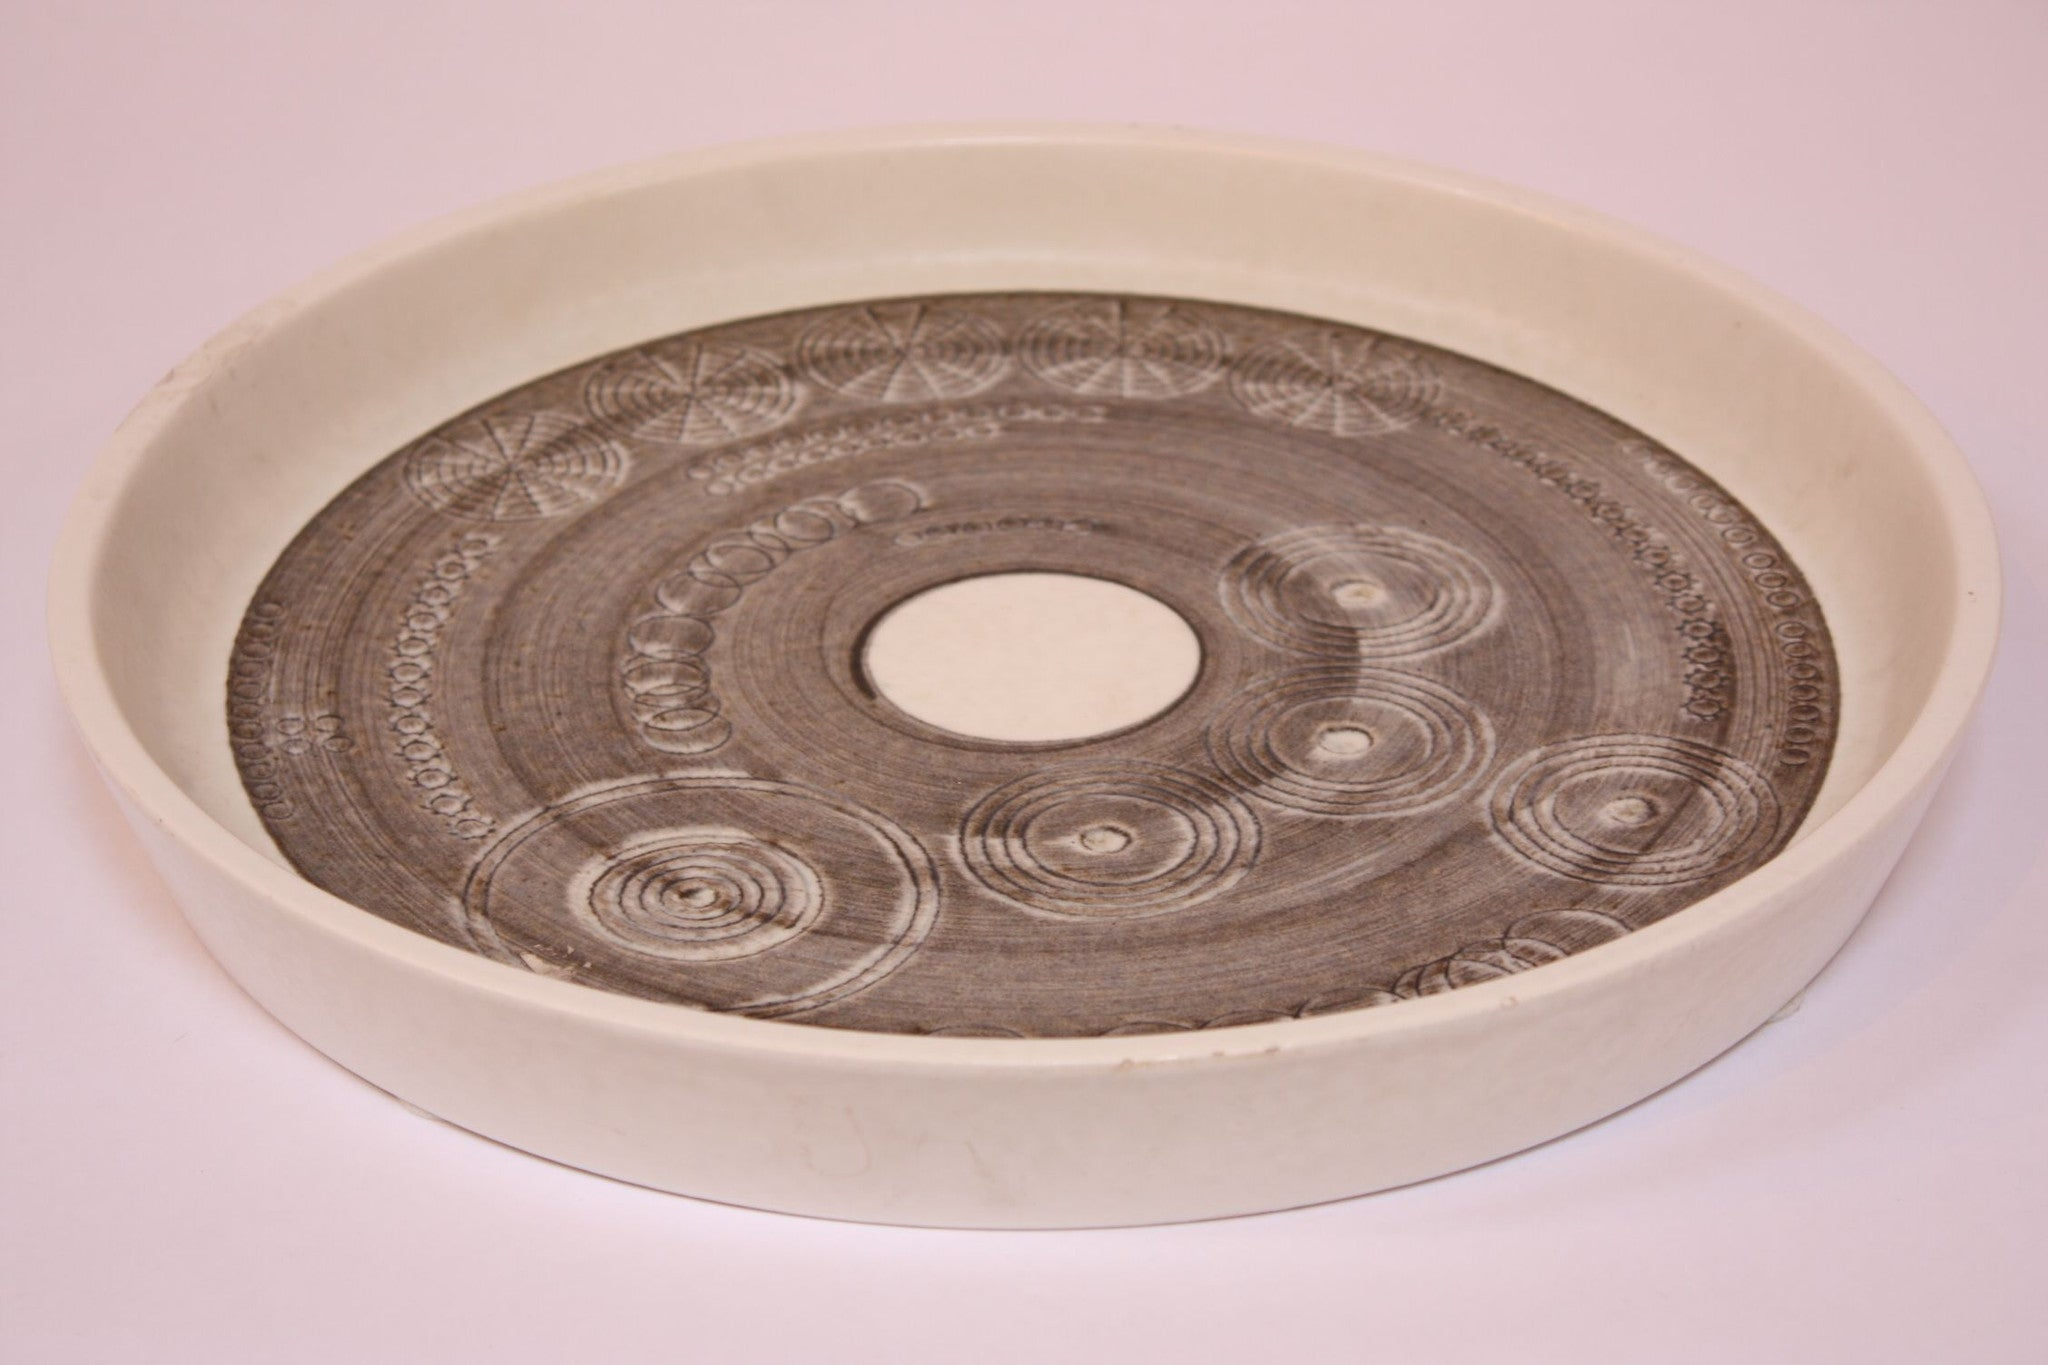 Large plate designed by Olle Alberius for Rorstrand